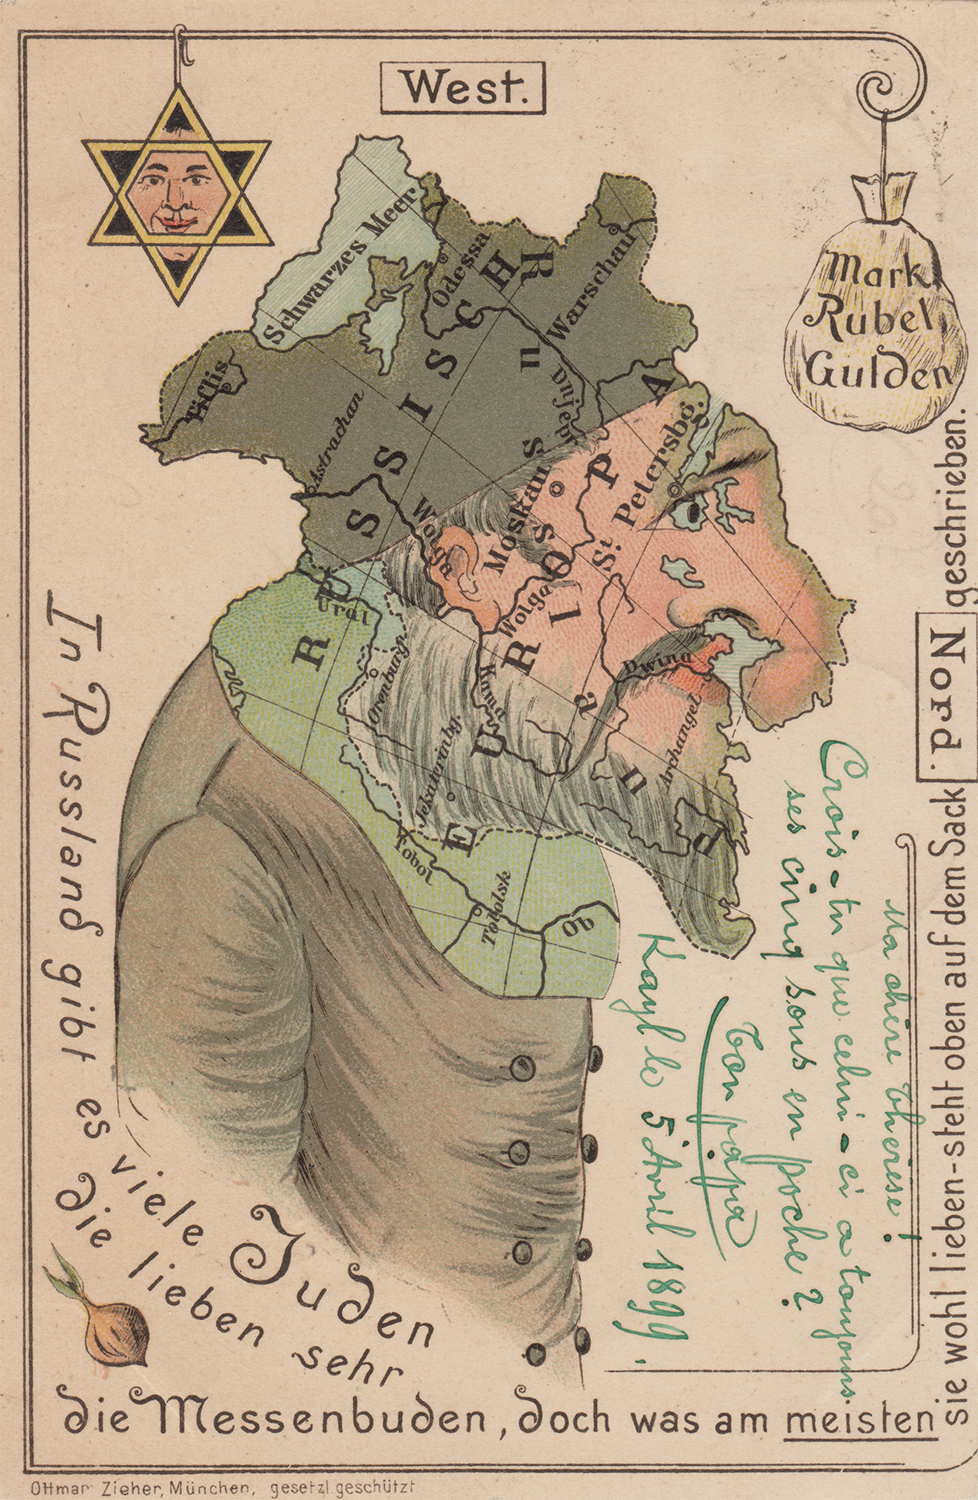 Anti-Semitic postcard emphasizing Jewish greed for money and power. 1899.